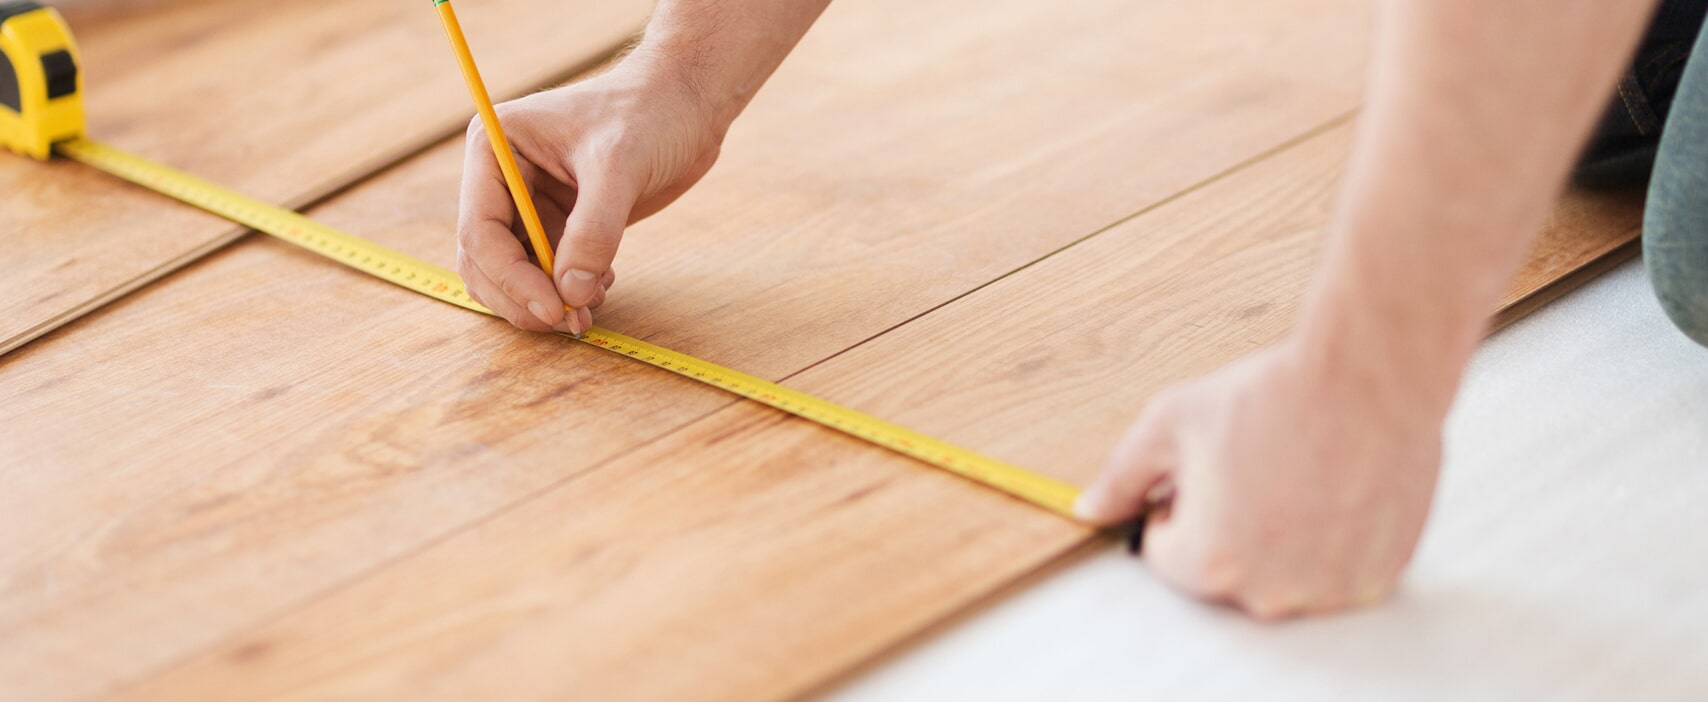 Flooring services in Orange, CT & Middletown, CT by Floor Decor